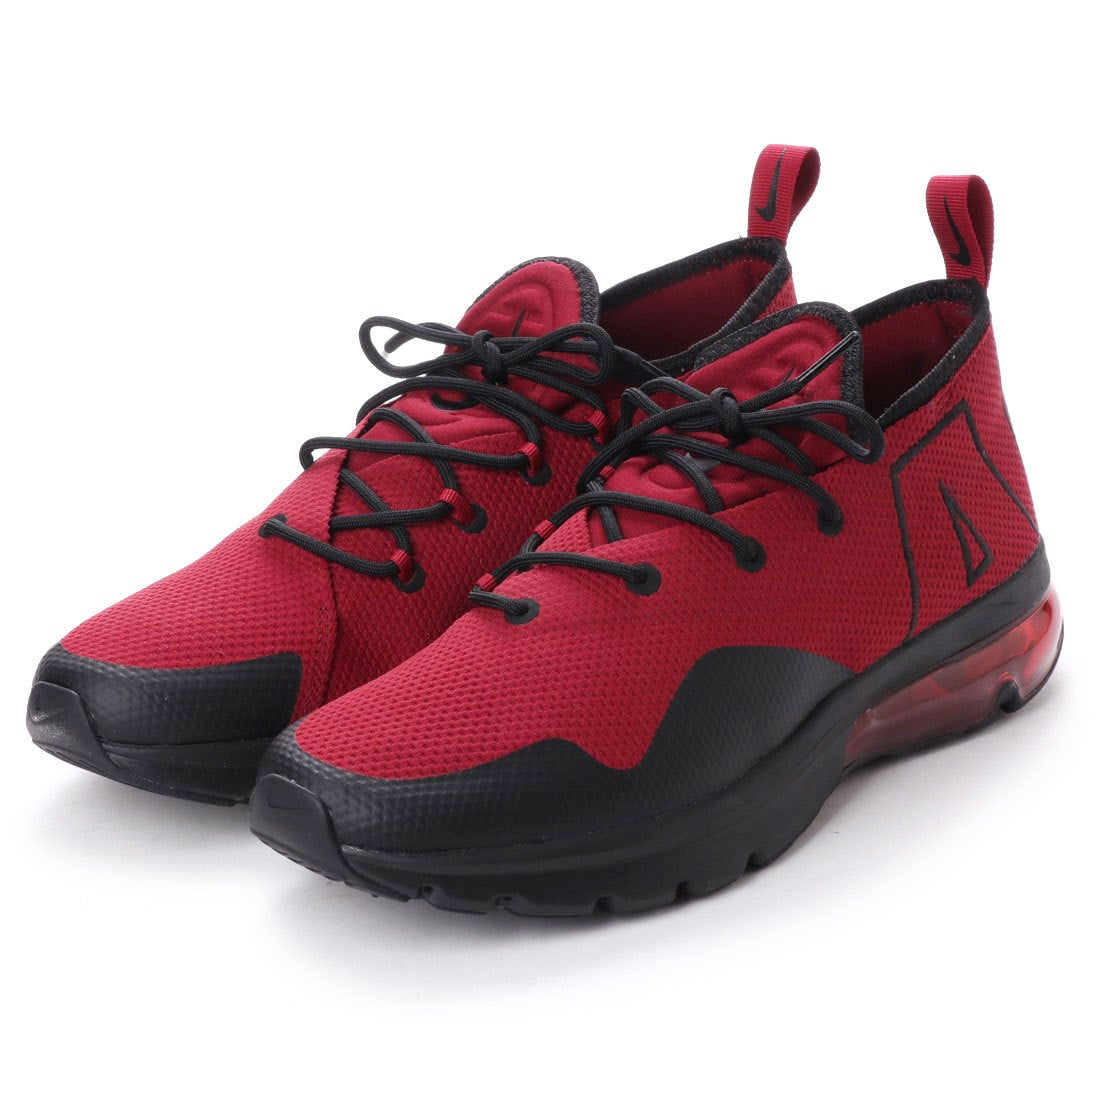 【SALE 15%OFF】ナイキ NIKE atmos AIR MAX FLAIR 50 (RED) レディース メンズ